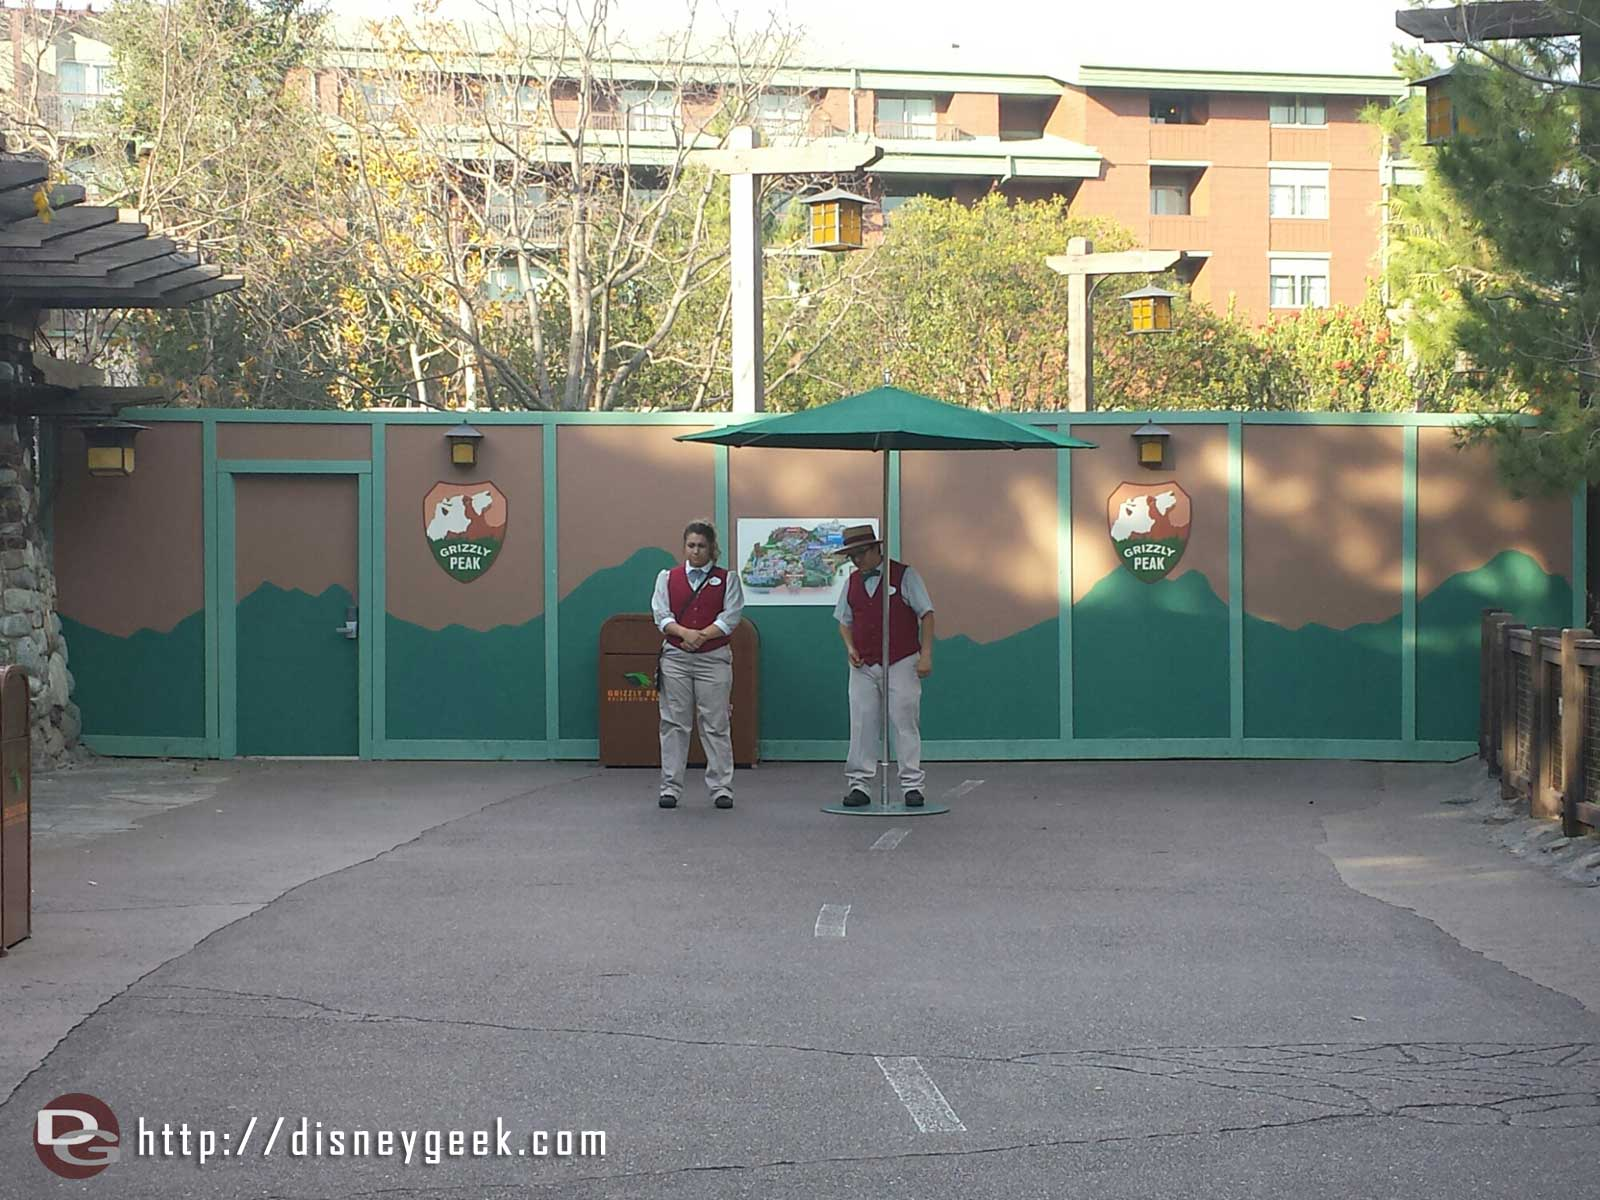 The walkway to Condor Flats is blocked off at the Grand Californian entrance path